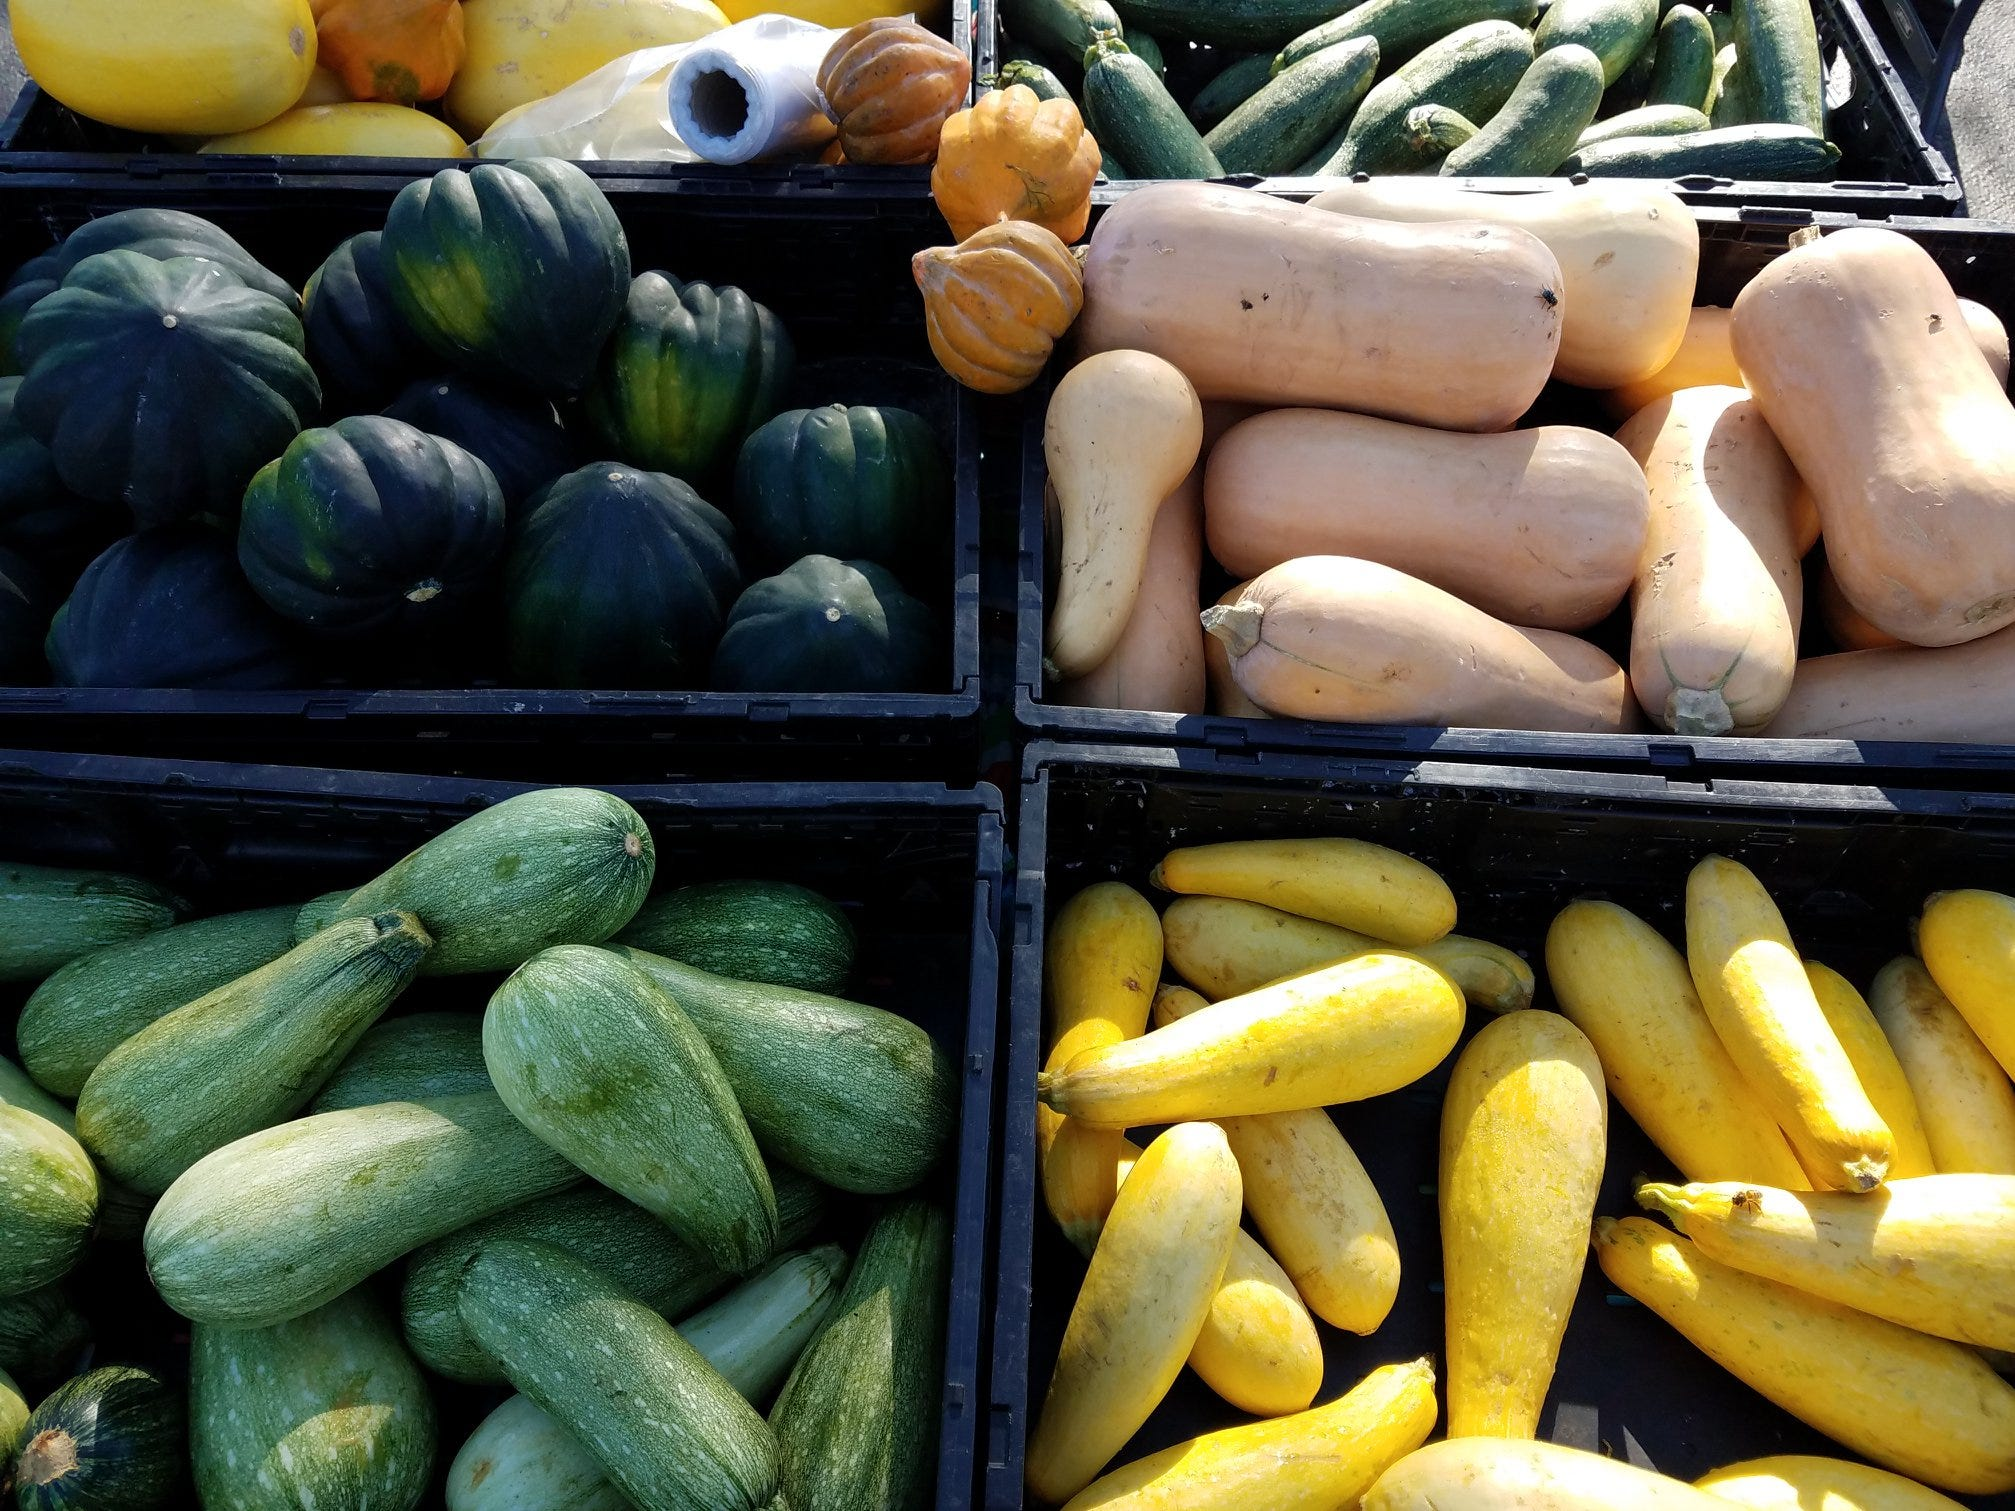 Shoppers can find a variety of seasonal produce at the Corpus Christi Southside Farmers' Market. It is open Saturdays from 9 a.m. to noon at 5800 Everhart Road.